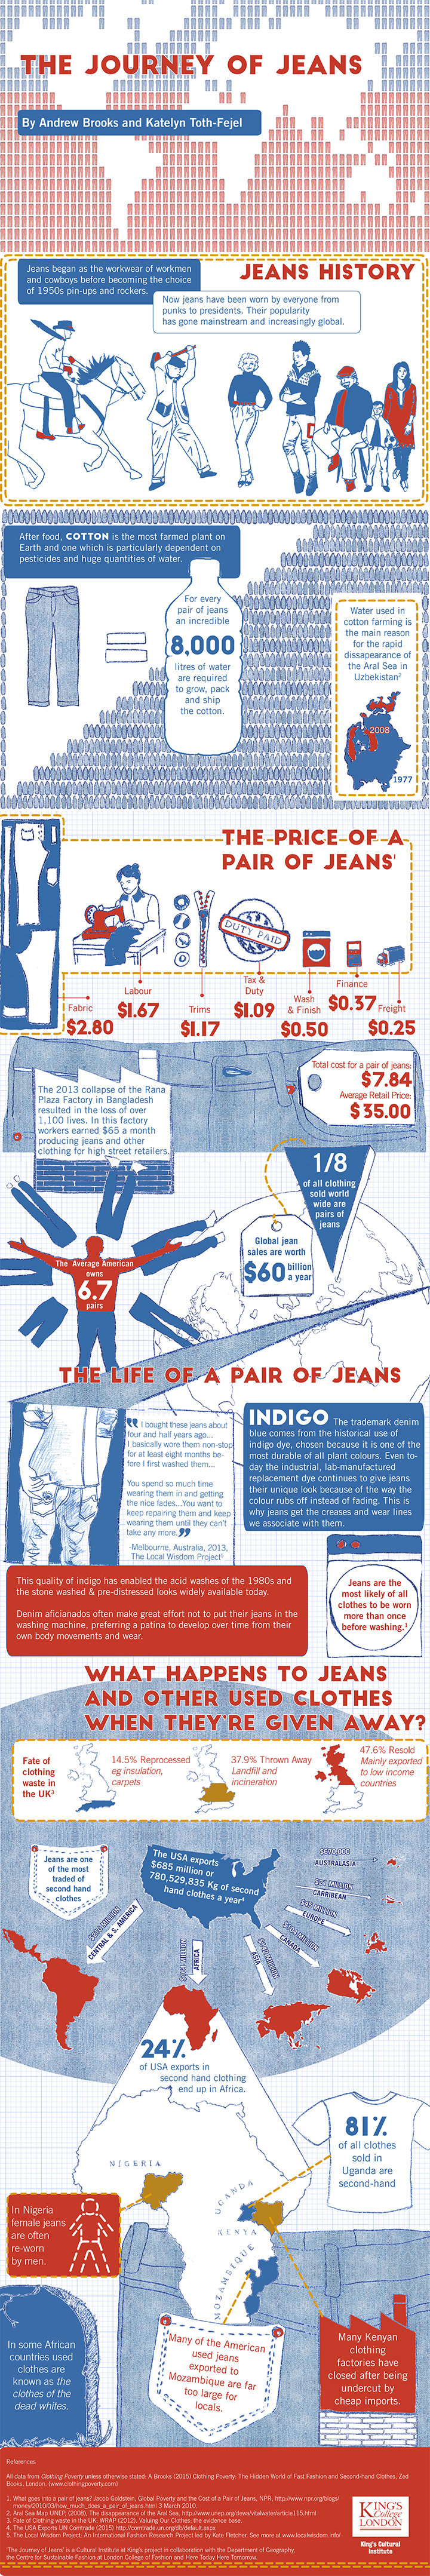 Journey of Jeans by Andrew Brooks and Katelyn Toth-Fejel.jpg